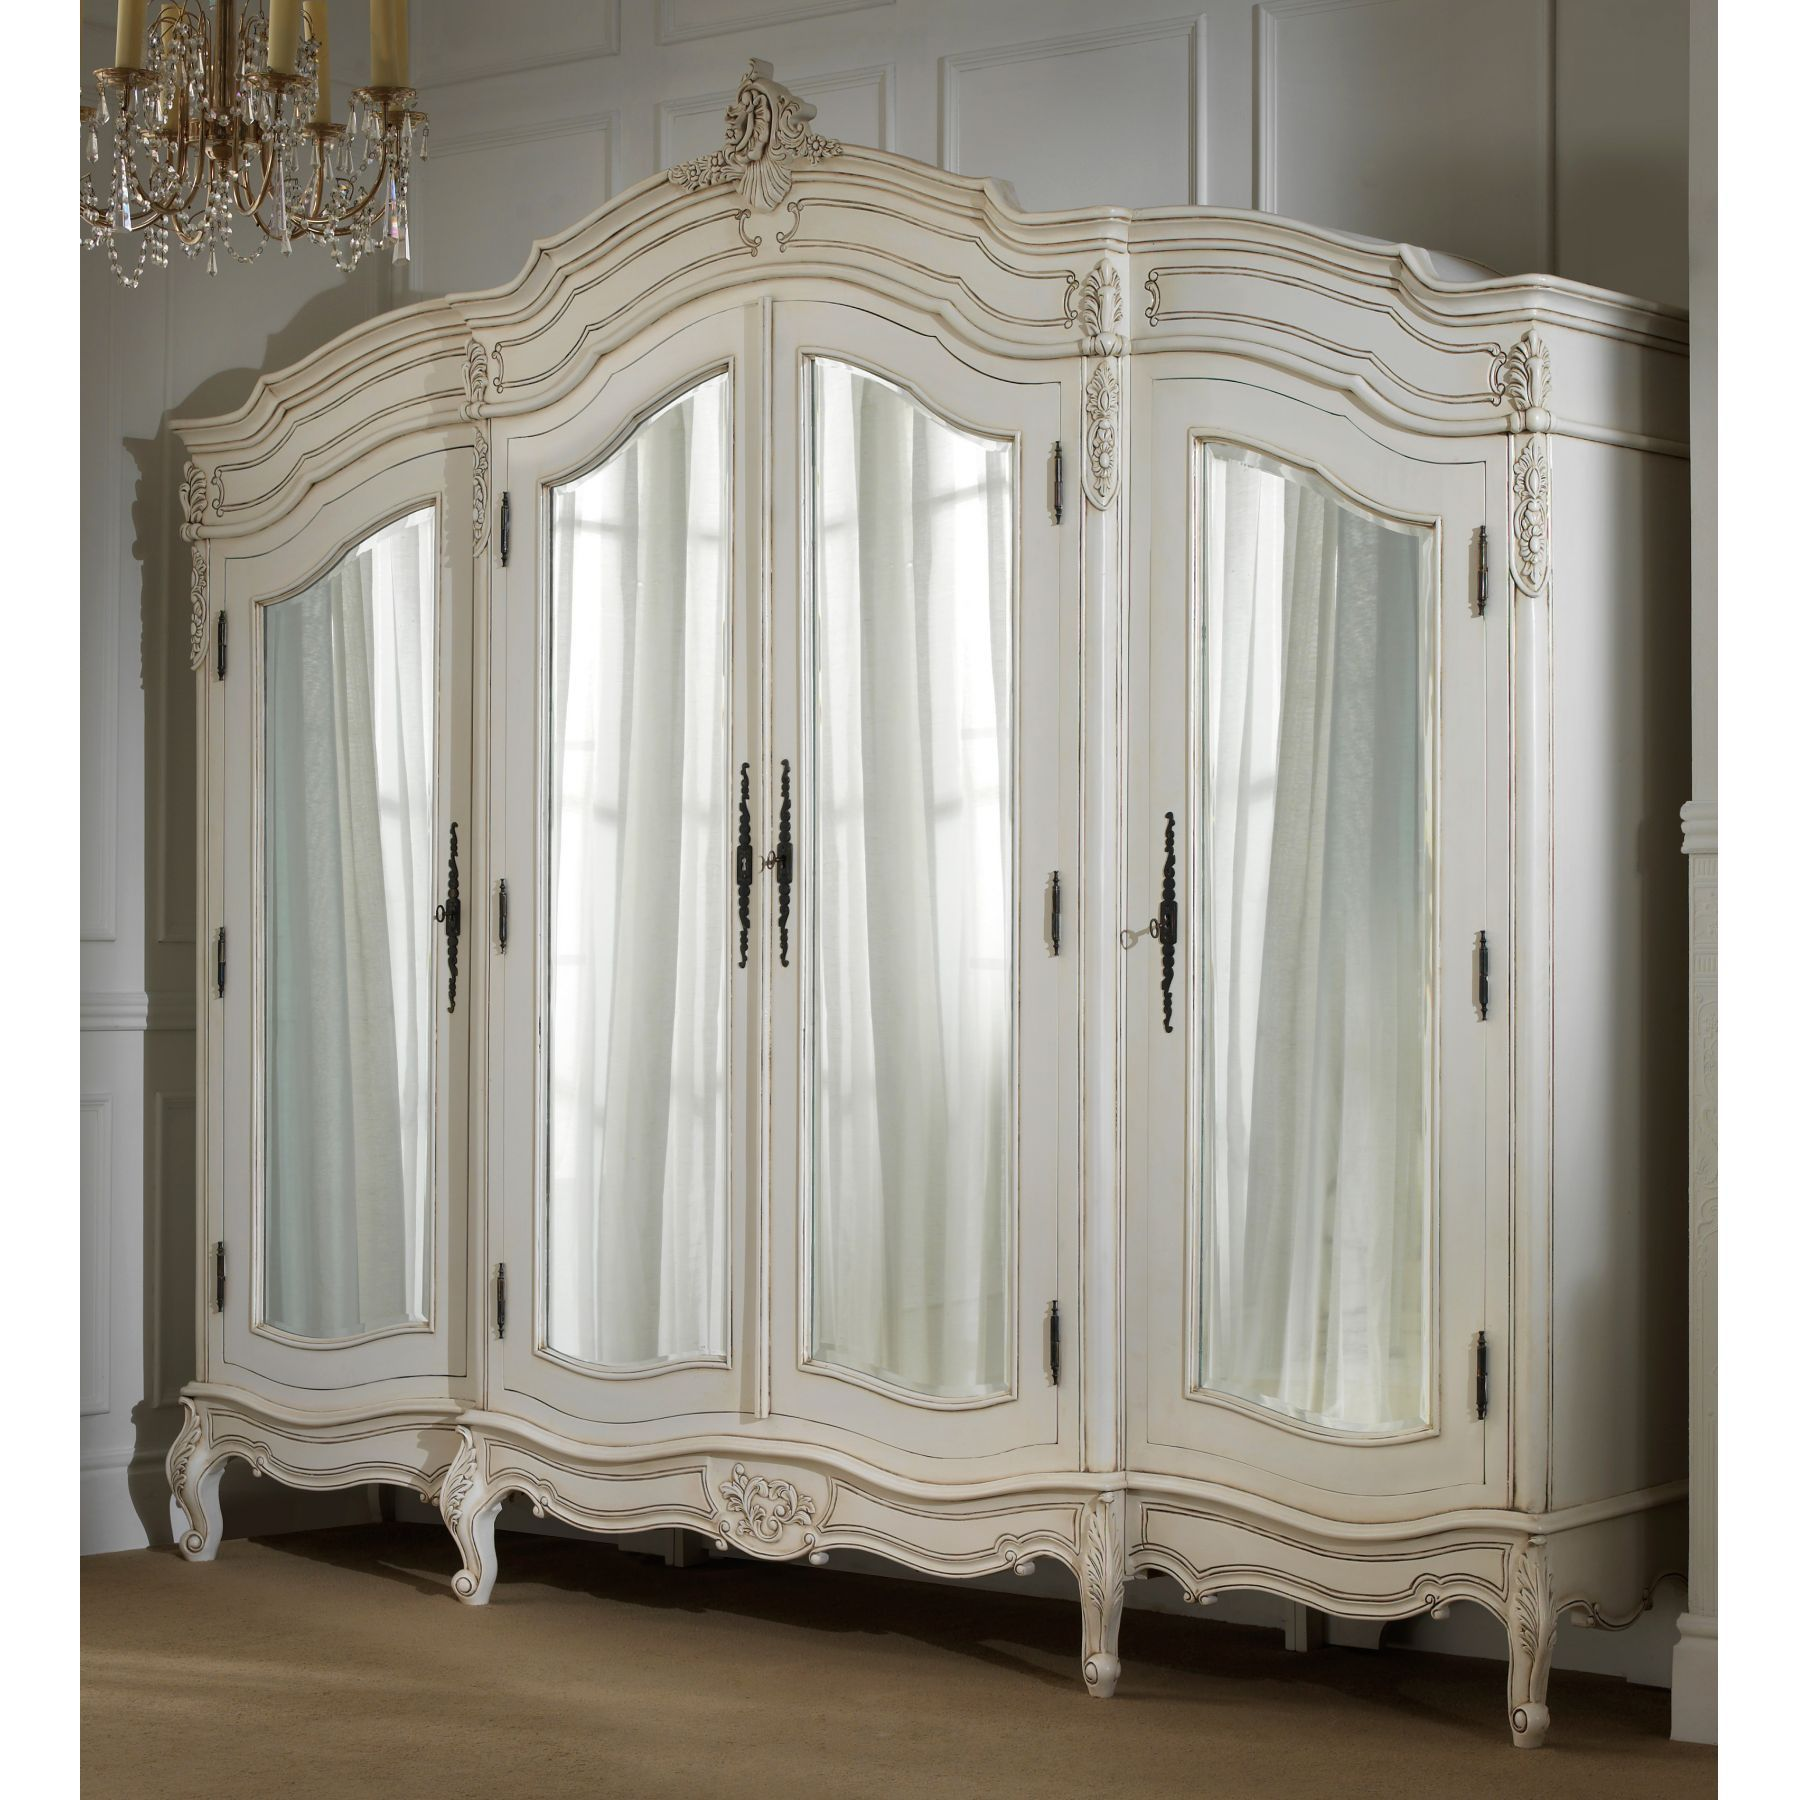 1000 Images About Armoire On Pinterest Silver Bedroom Pine